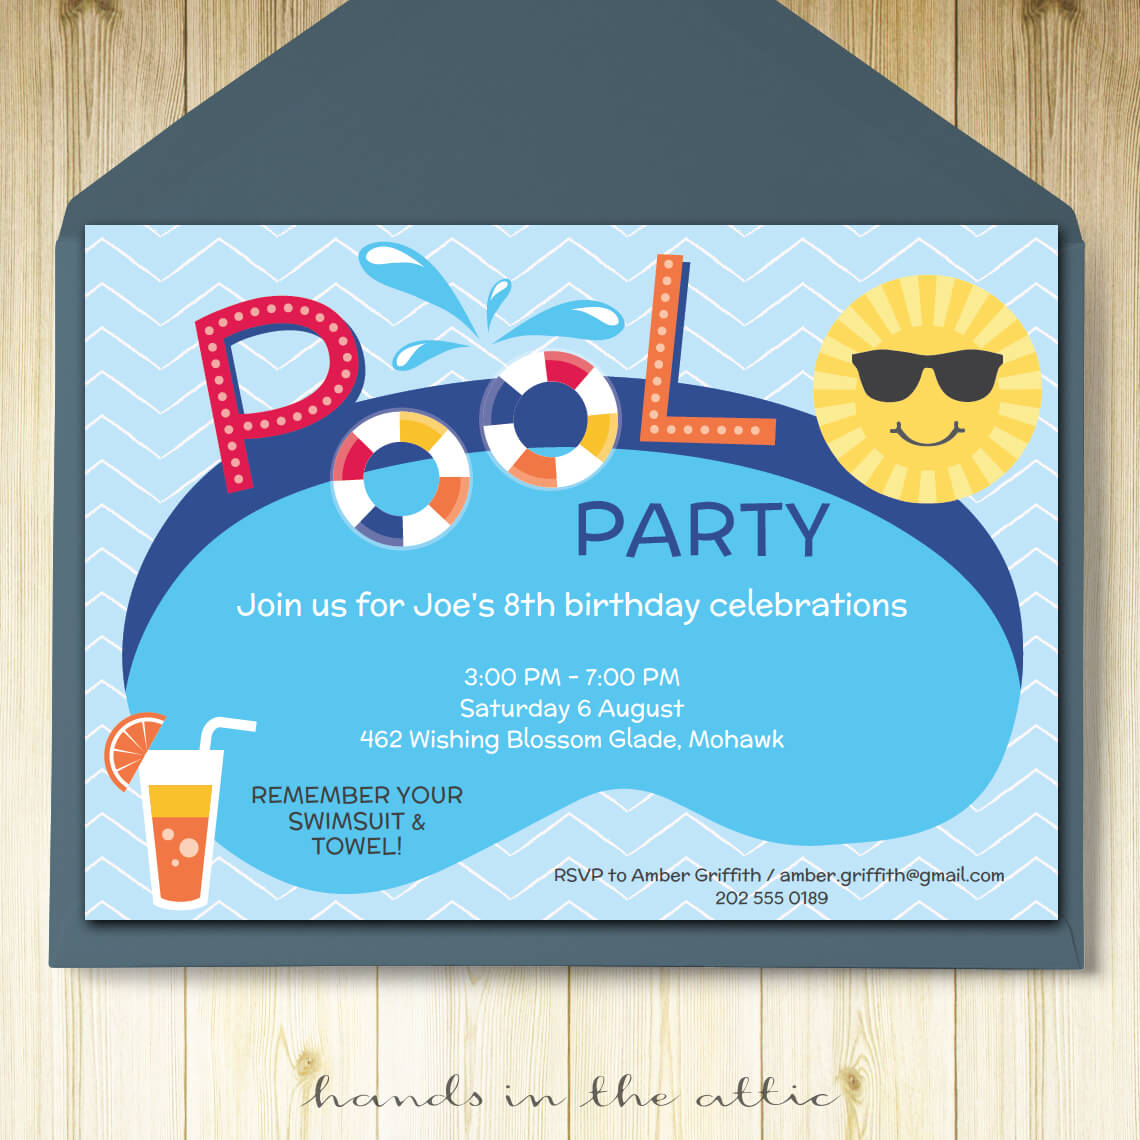 pool party invitation printable template printable stationery weddings parties celebrations. Black Bedroom Furniture Sets. Home Design Ideas